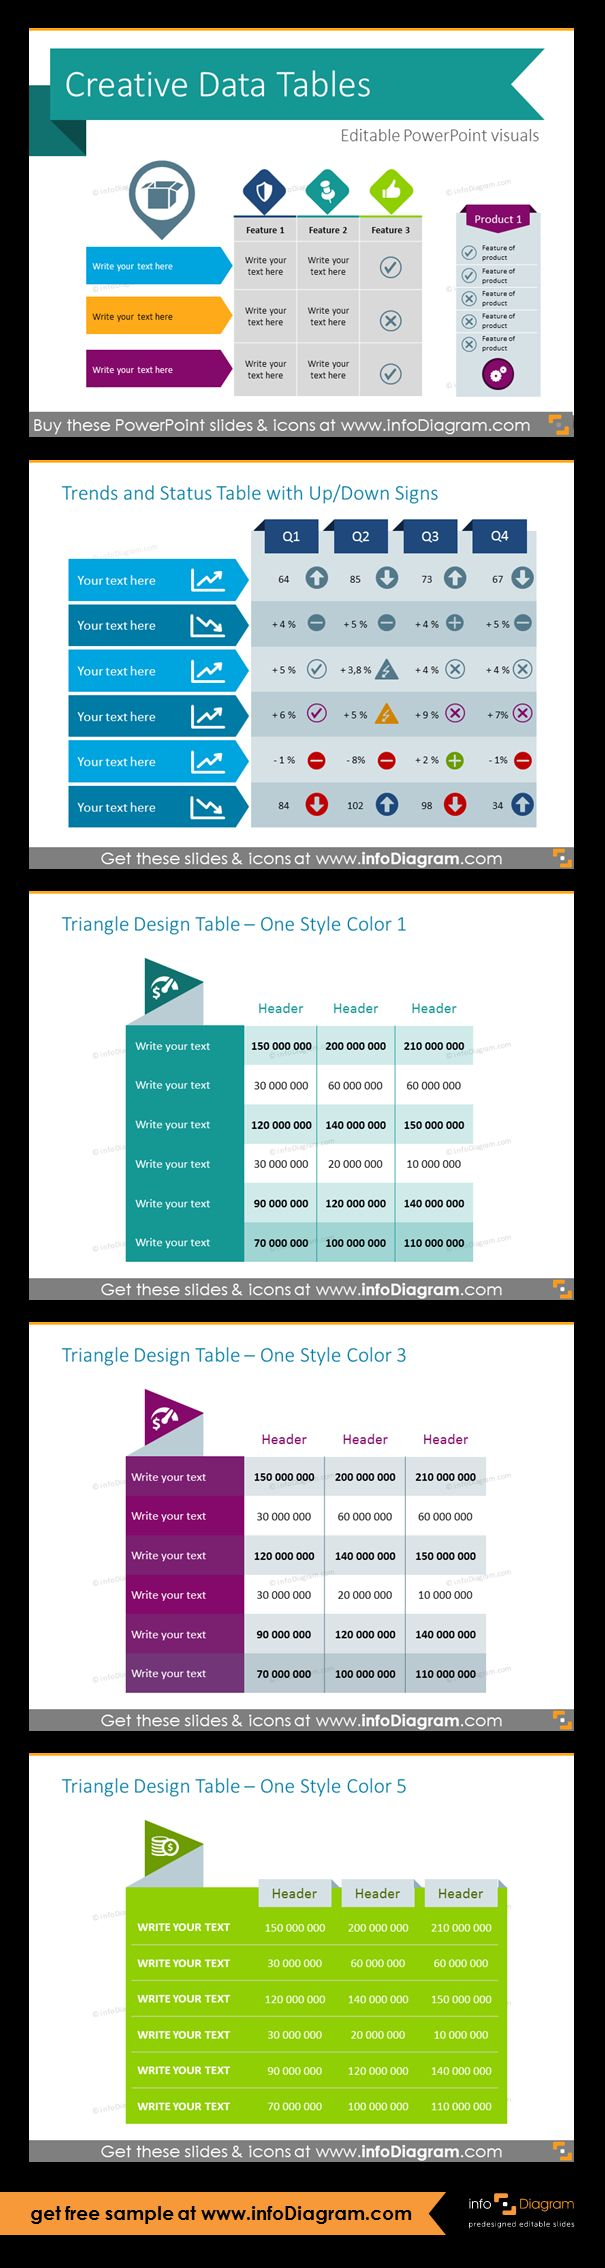 PowerPoint table templates: presenting current trends, triangle design tables in different colors. Replace ugly default tables and ordered lists with blackboard or modern flat tables.